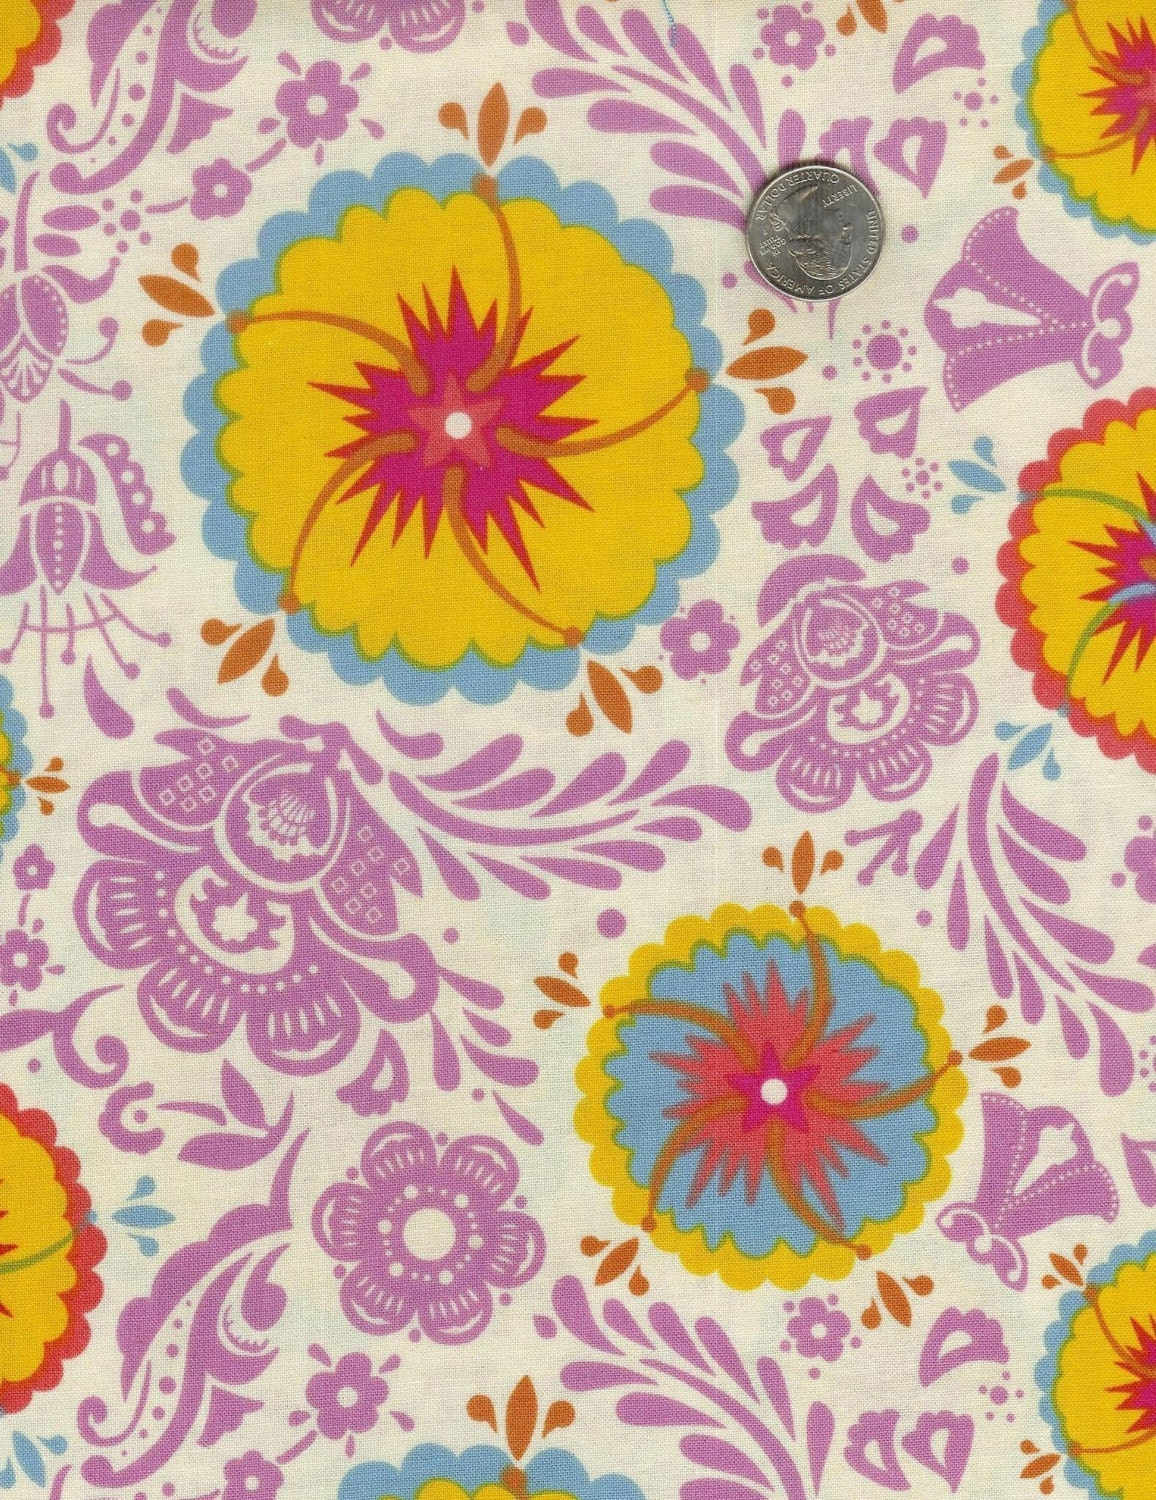 NEW - Fat quarter - Anna Maria Horner Good Folks - Fortune in Sun - cotton quilt fabric